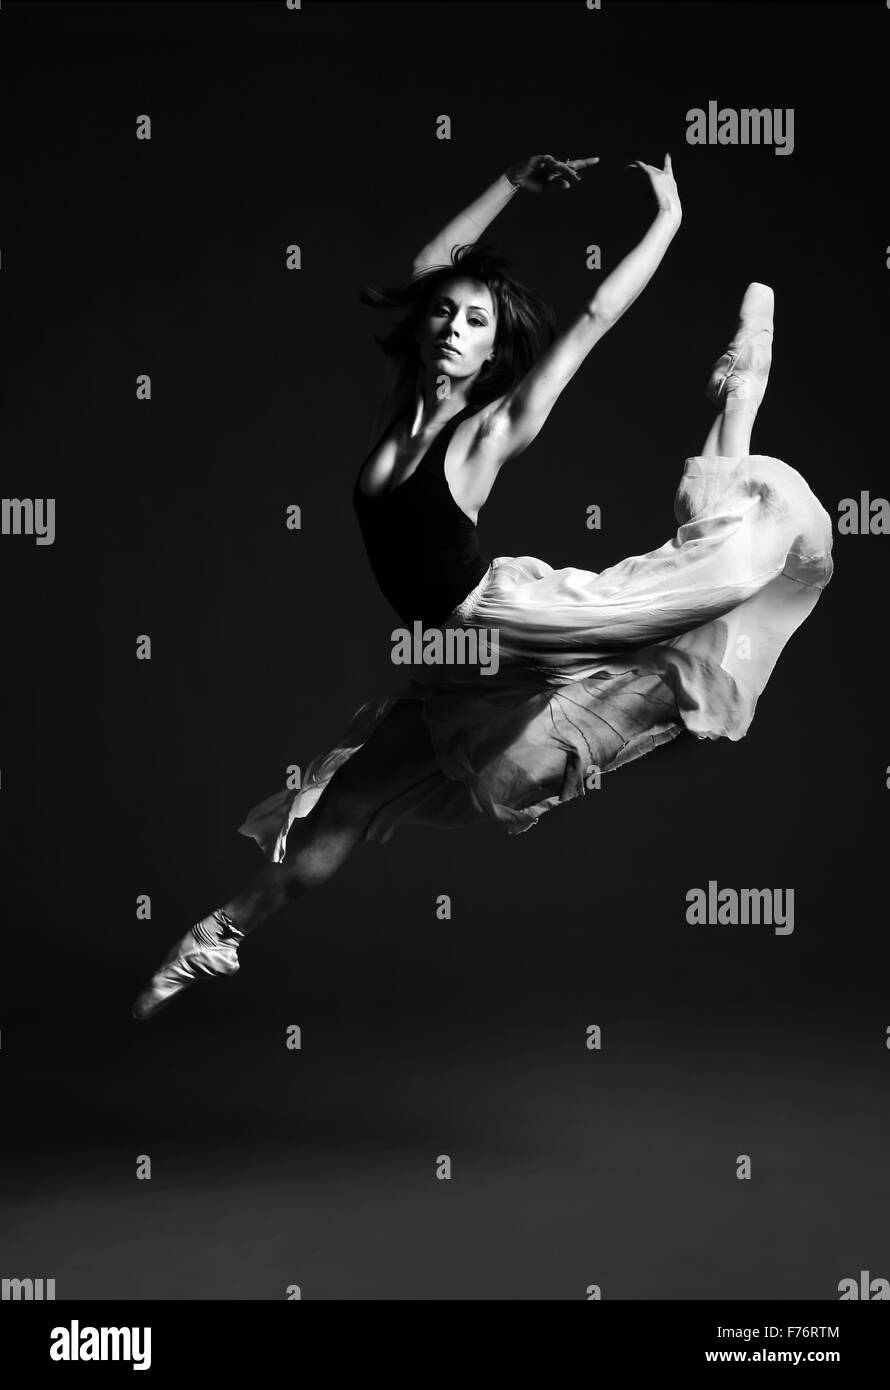 Ballet dancer in striking flying pose, black and white image - Stock Image